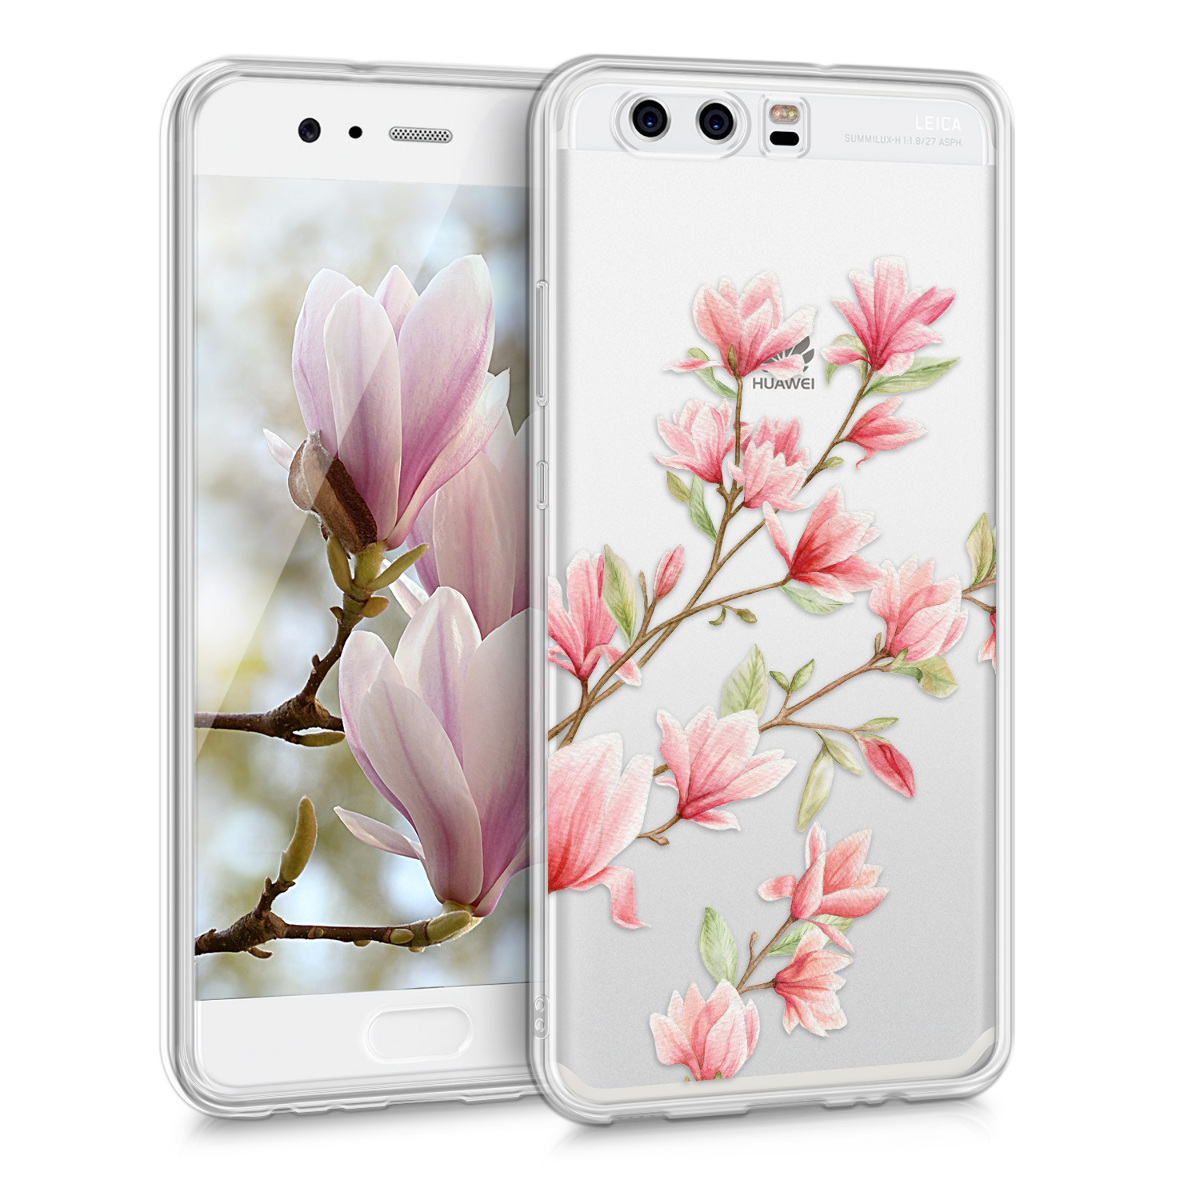 KW Θήκη Σιλικόνης Case for Huawei P10 - Light Pink / White / Transparent (40970.31)